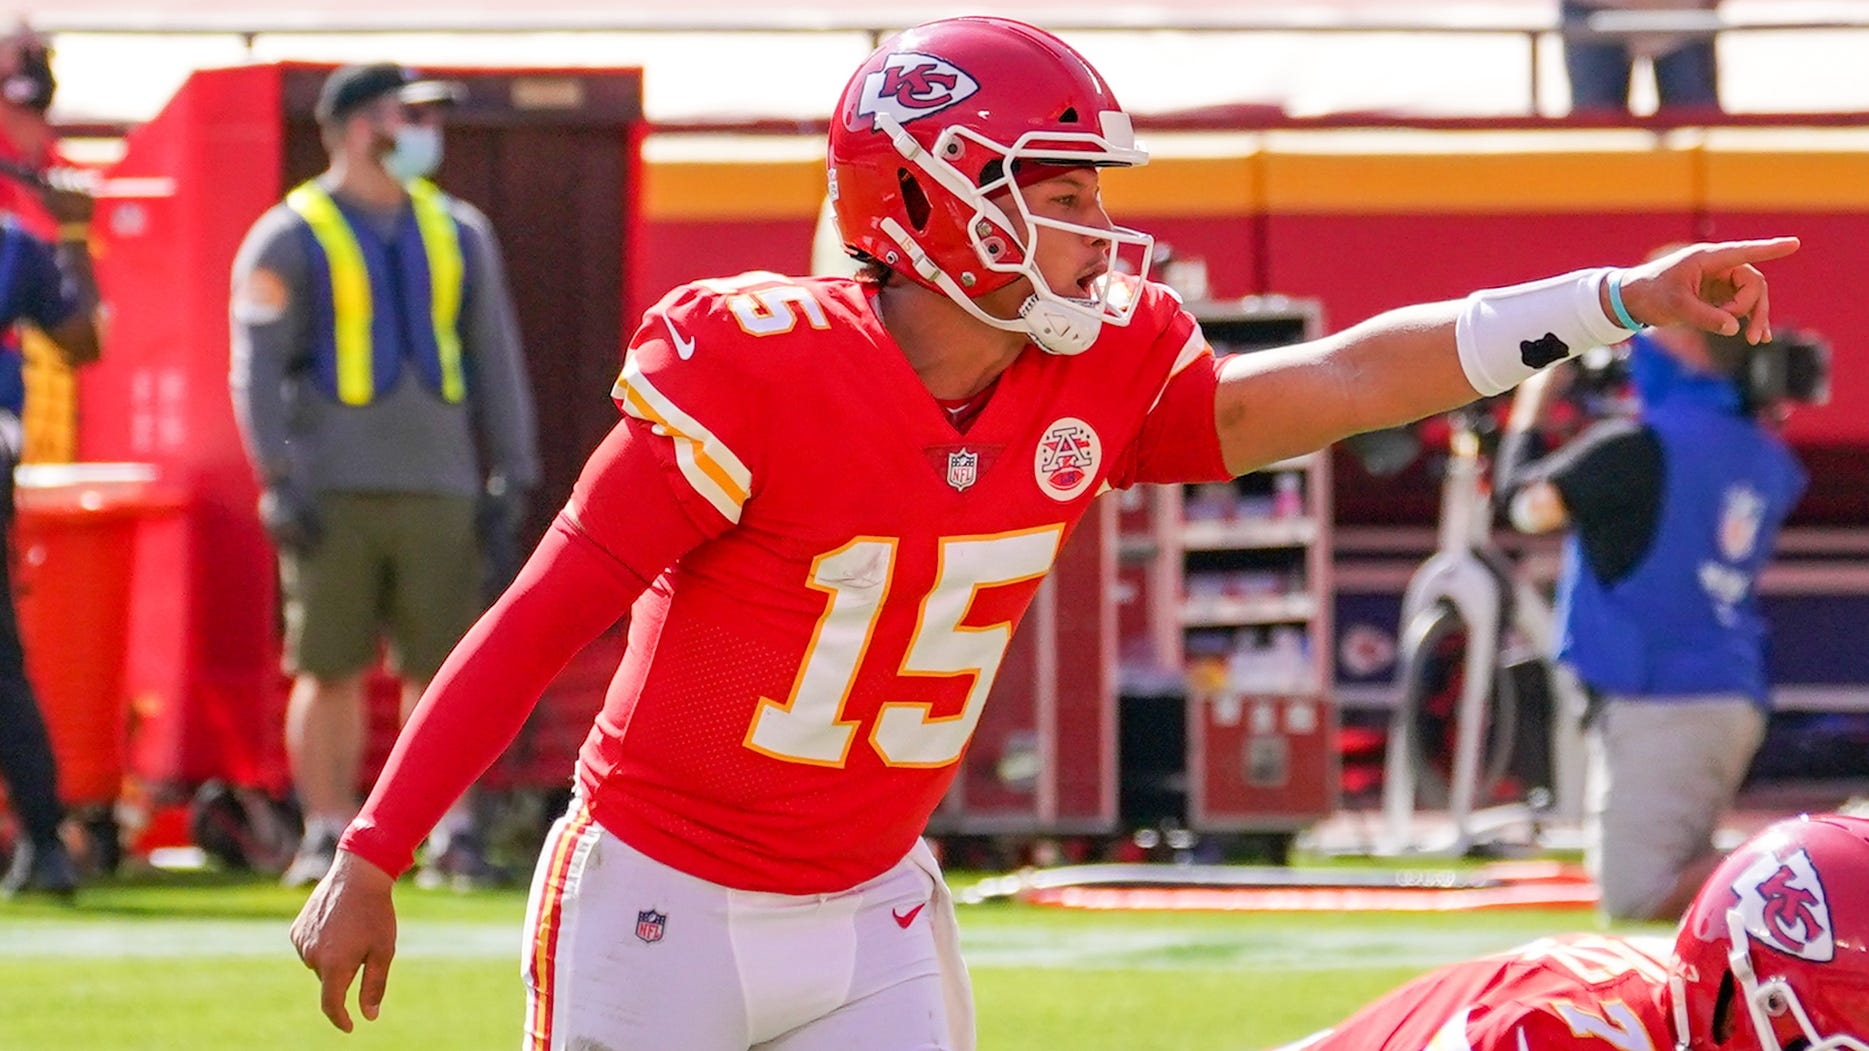 Chiefs-Bills matchup to feature prolific QBs and offenses